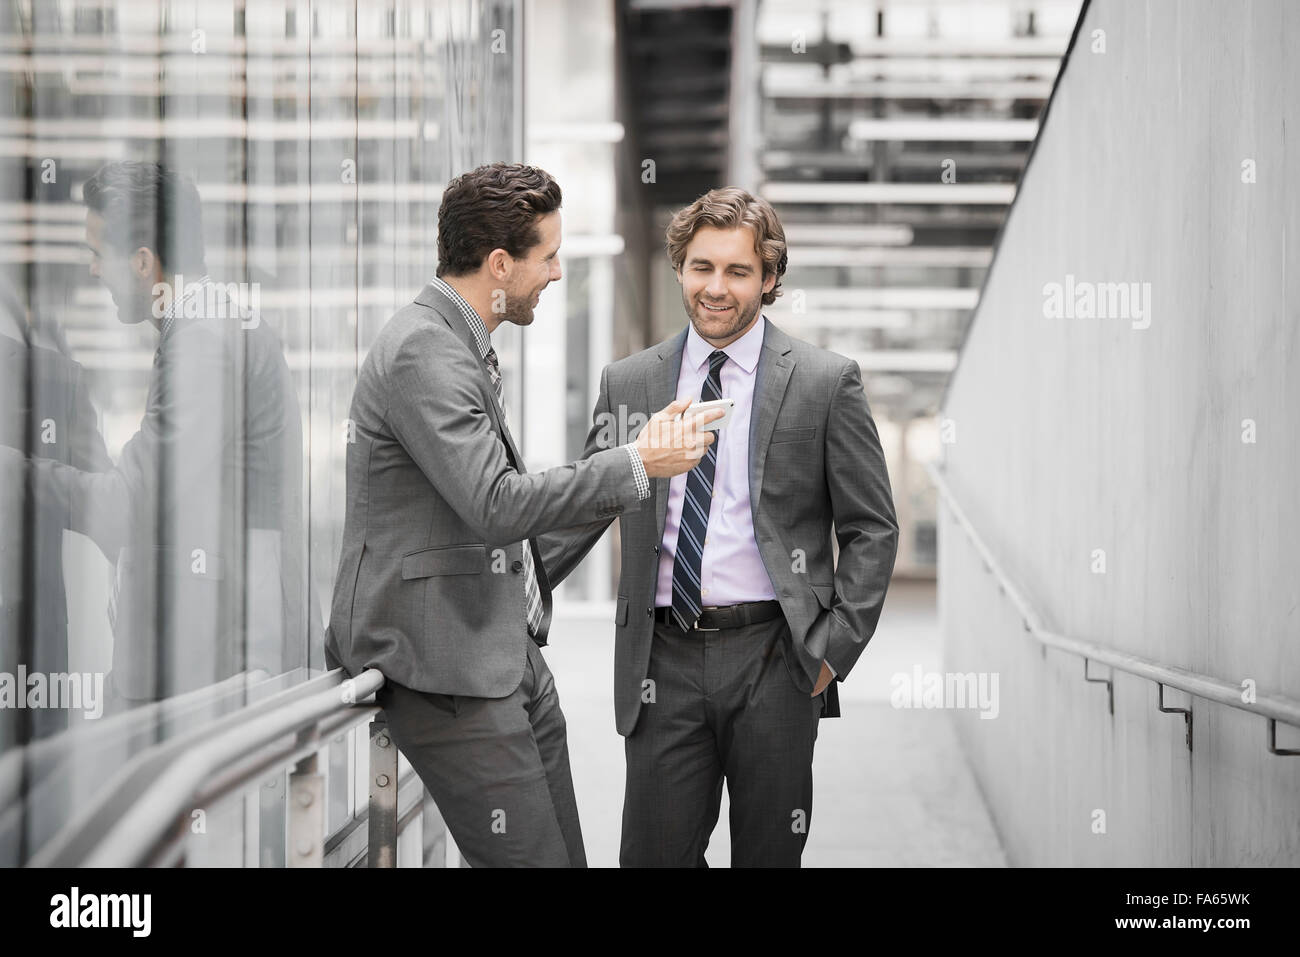 Two men in business suits outside a large building, one holding a smart phone. - Stock Image